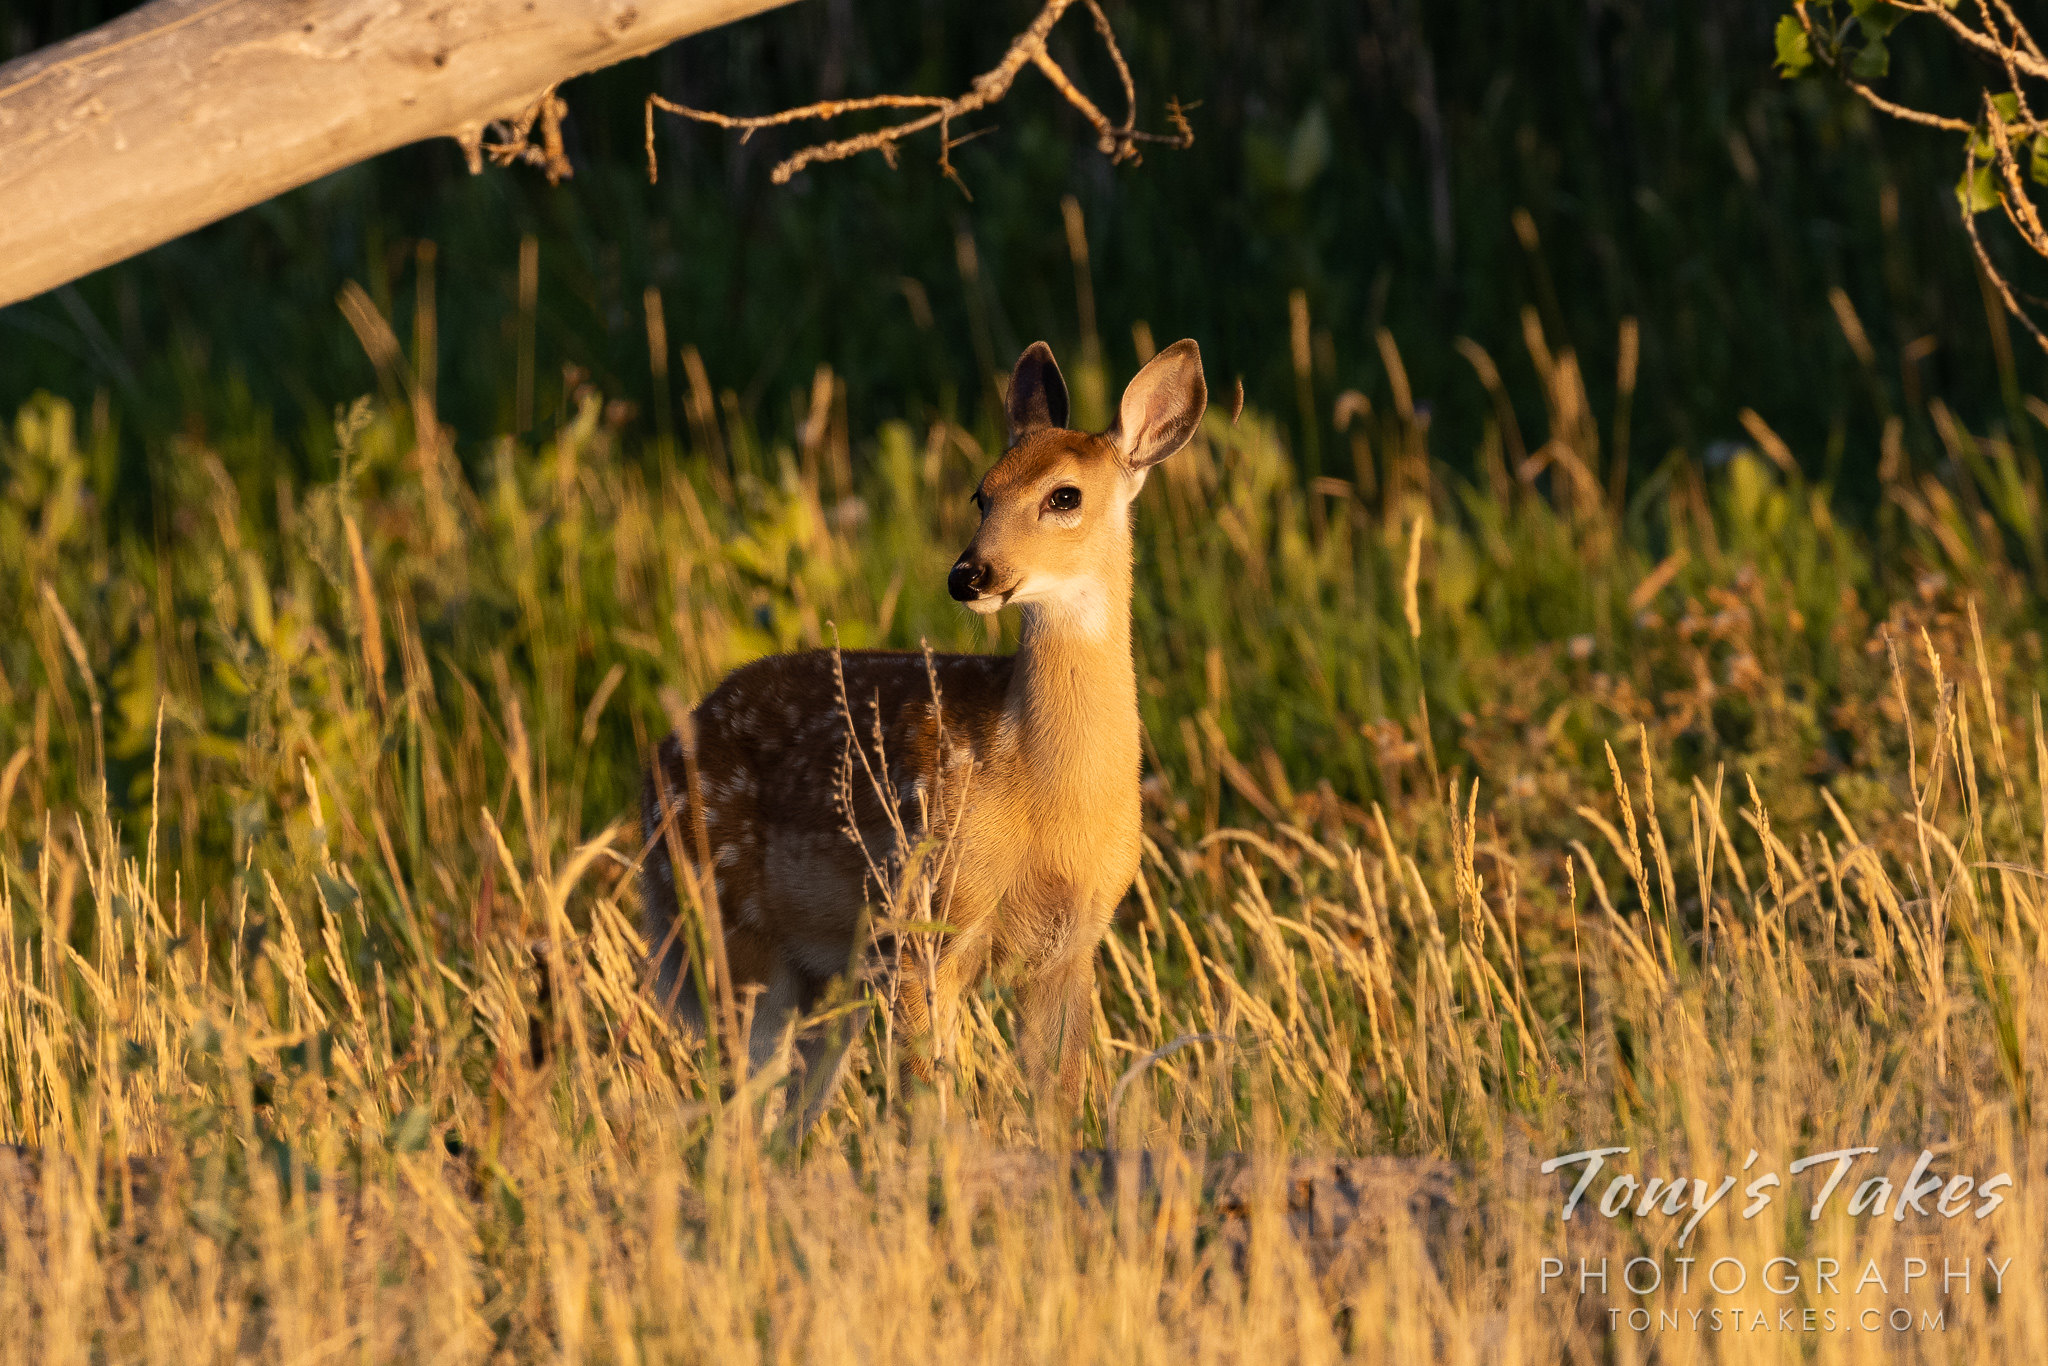 Precious deer fawn poses in the early morning light